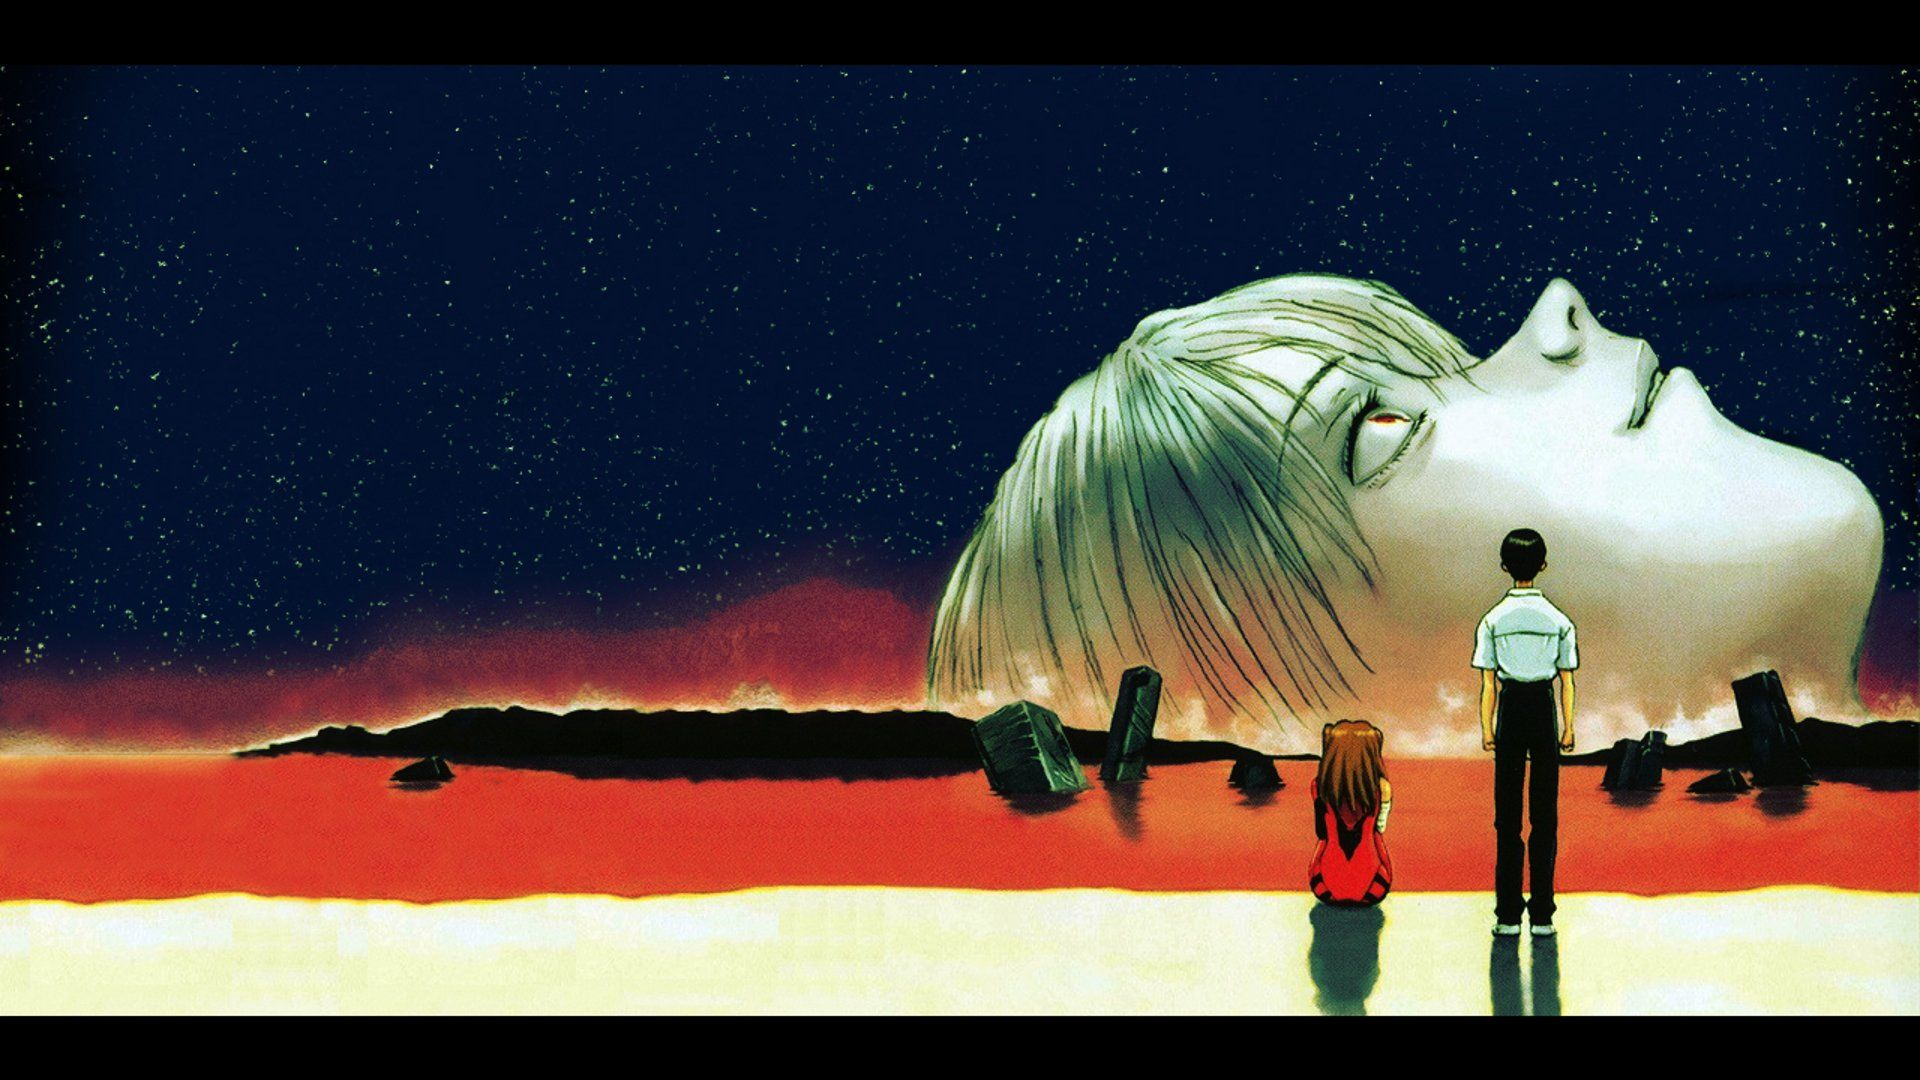 End Of Evangelion Wallpapers Top Free End Of Evangelion Backgrounds Wallpaperaccess